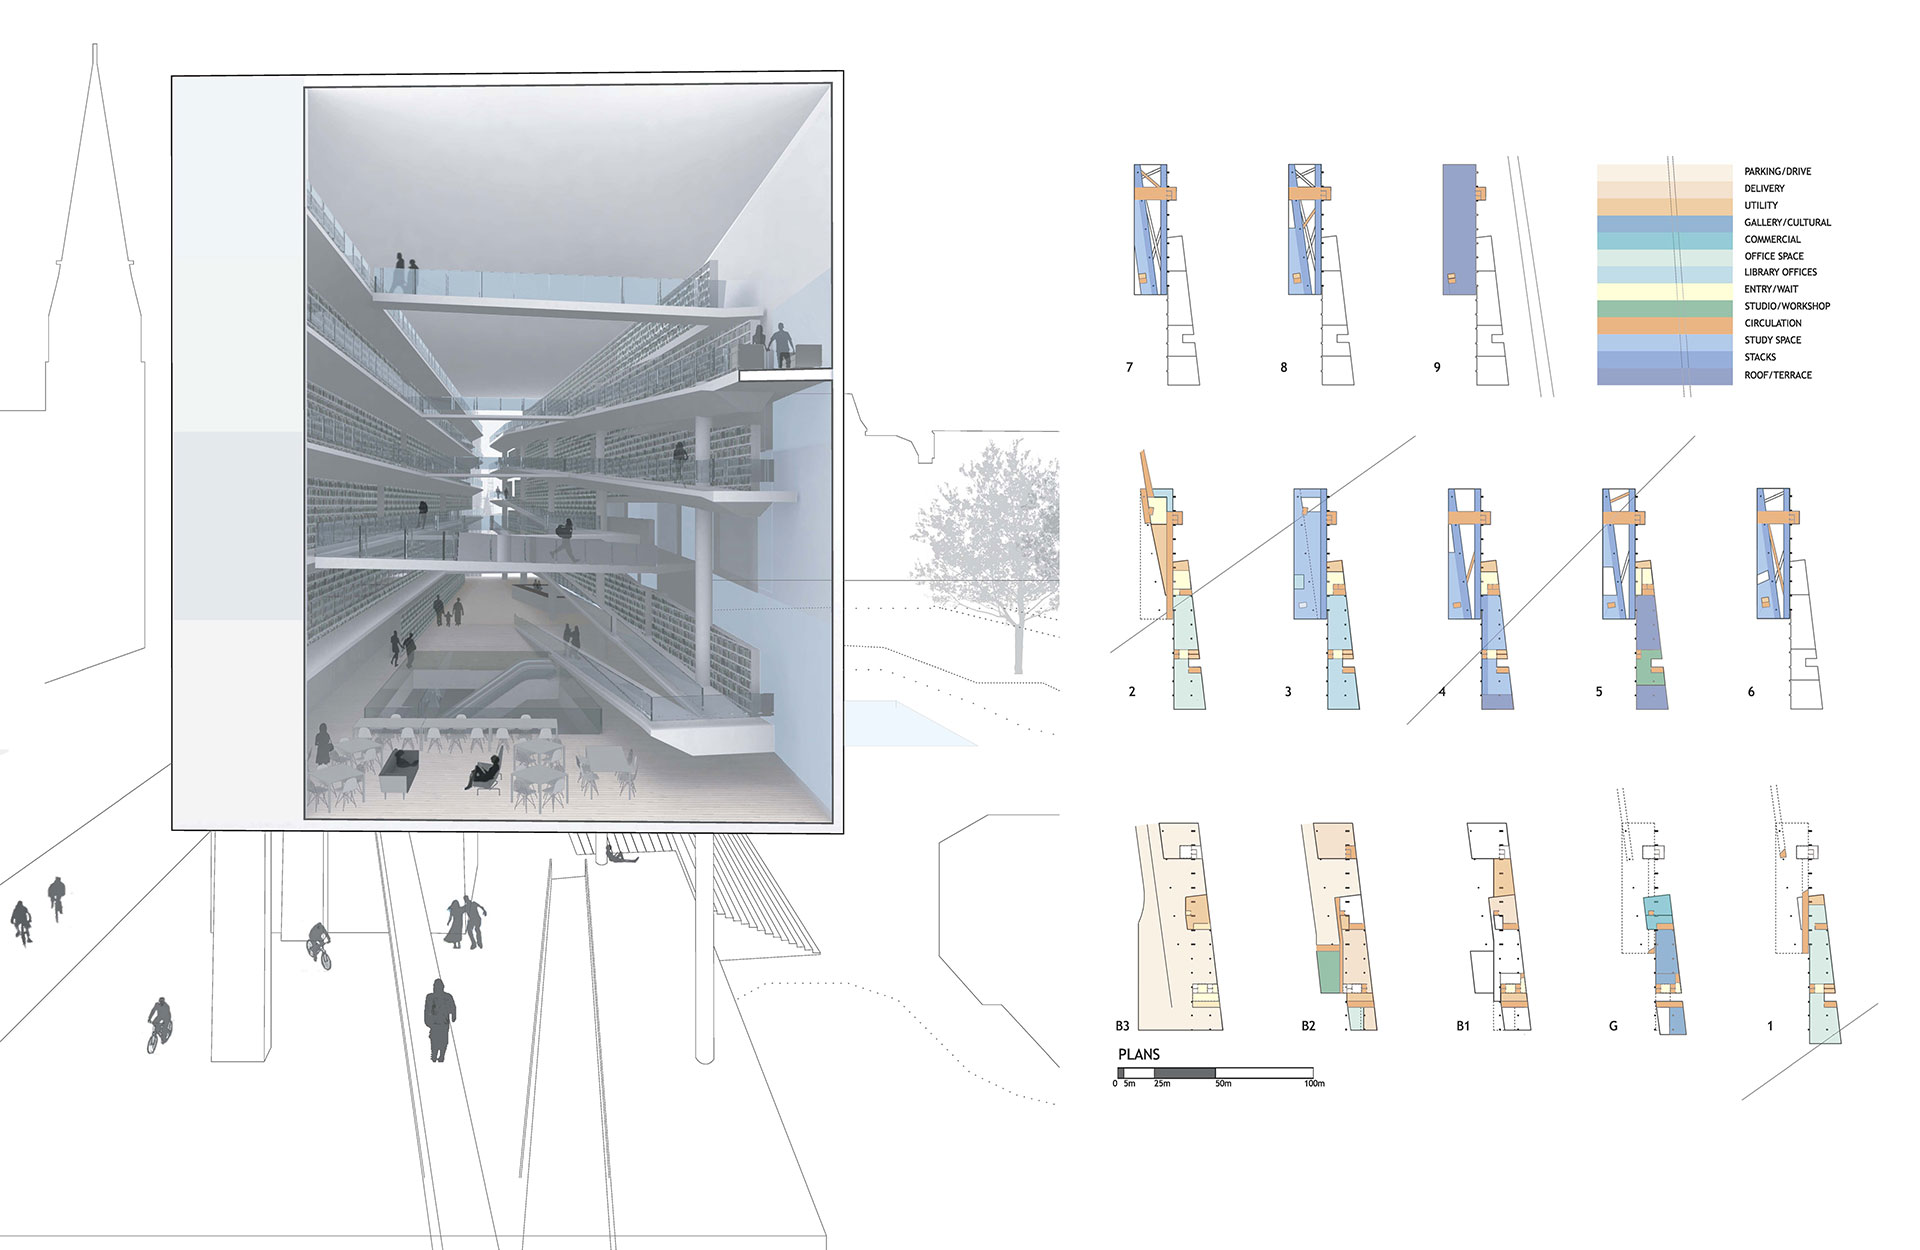 Dun-Laoghare-1-library-image-and-plans